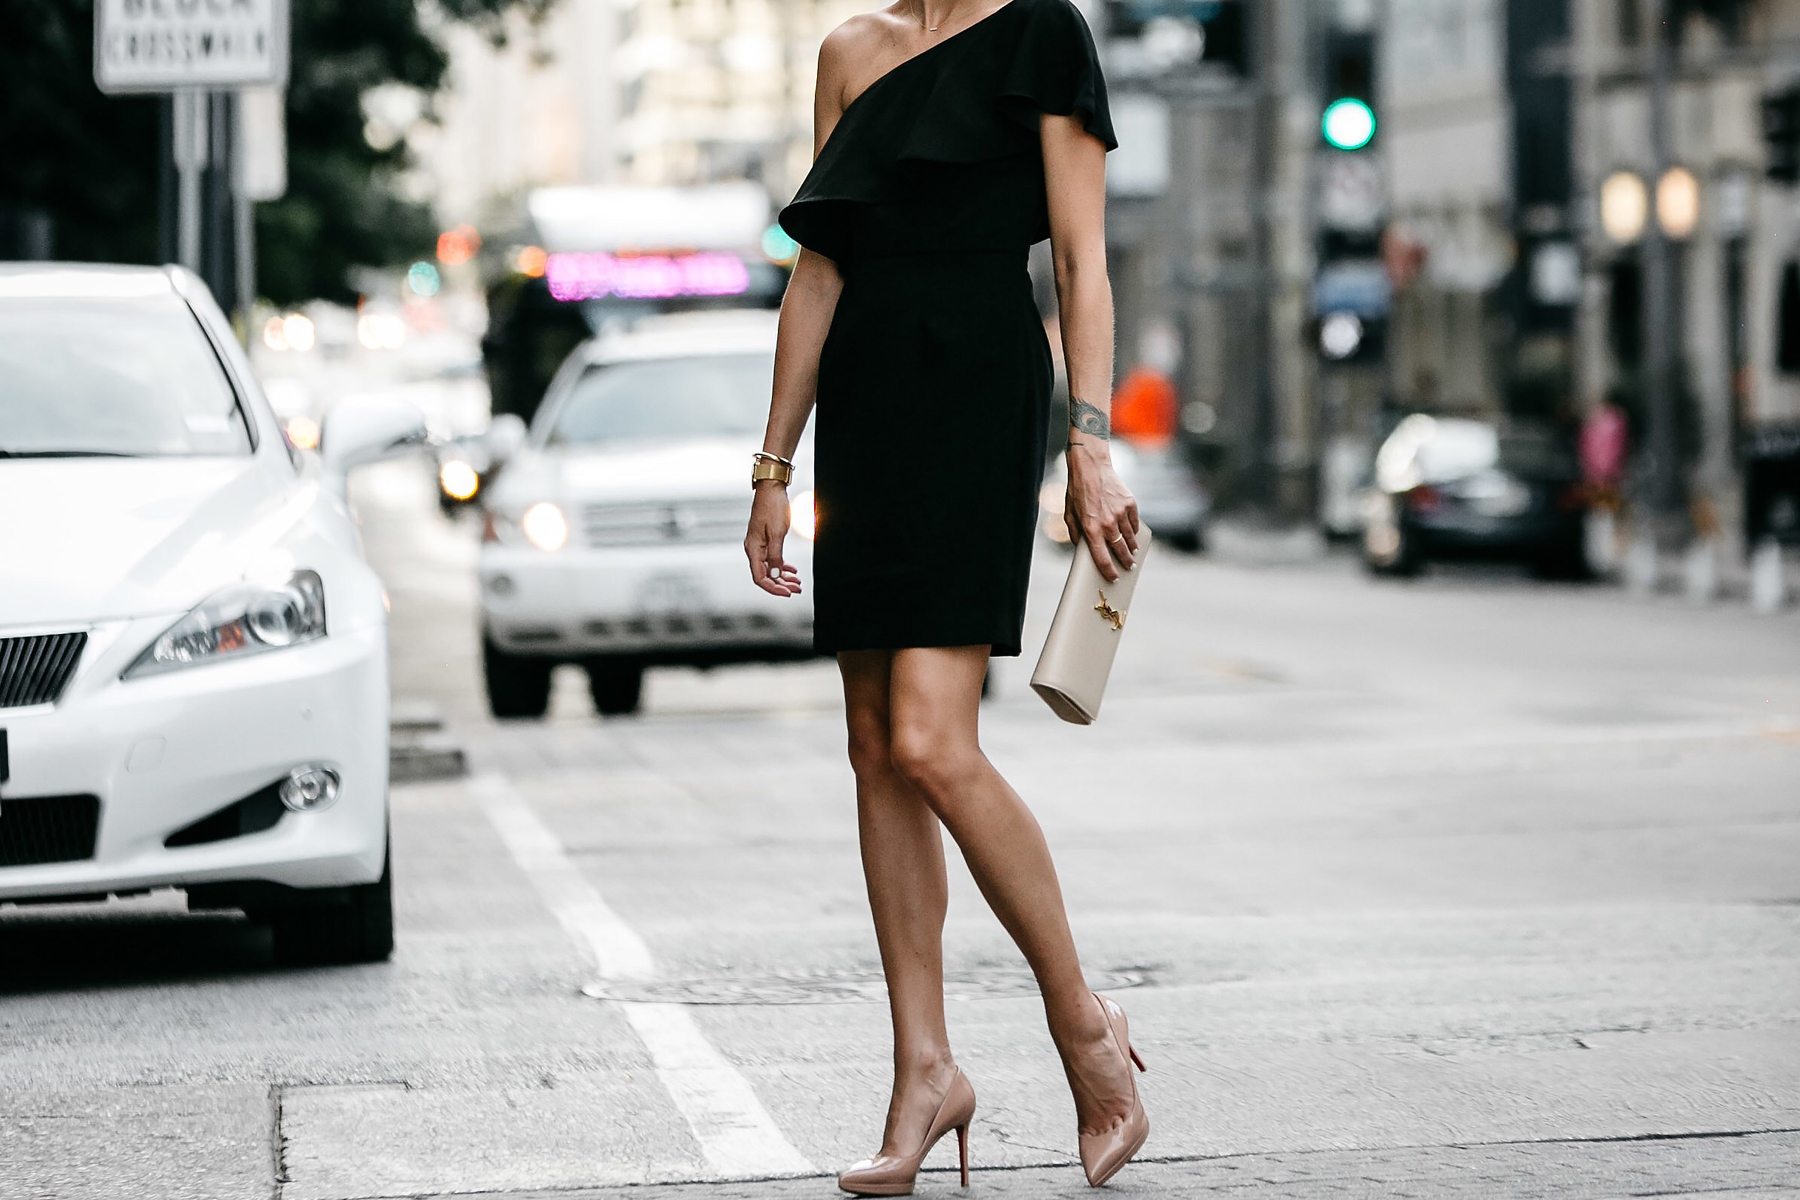 Nordstrom Black One Shoulder Ruffle Dress Saint Laurent Monogram Clutch Christian Louboutin Nude Pumps Fashion Jackson Dallas Blogger Fashion Blogger Street Style